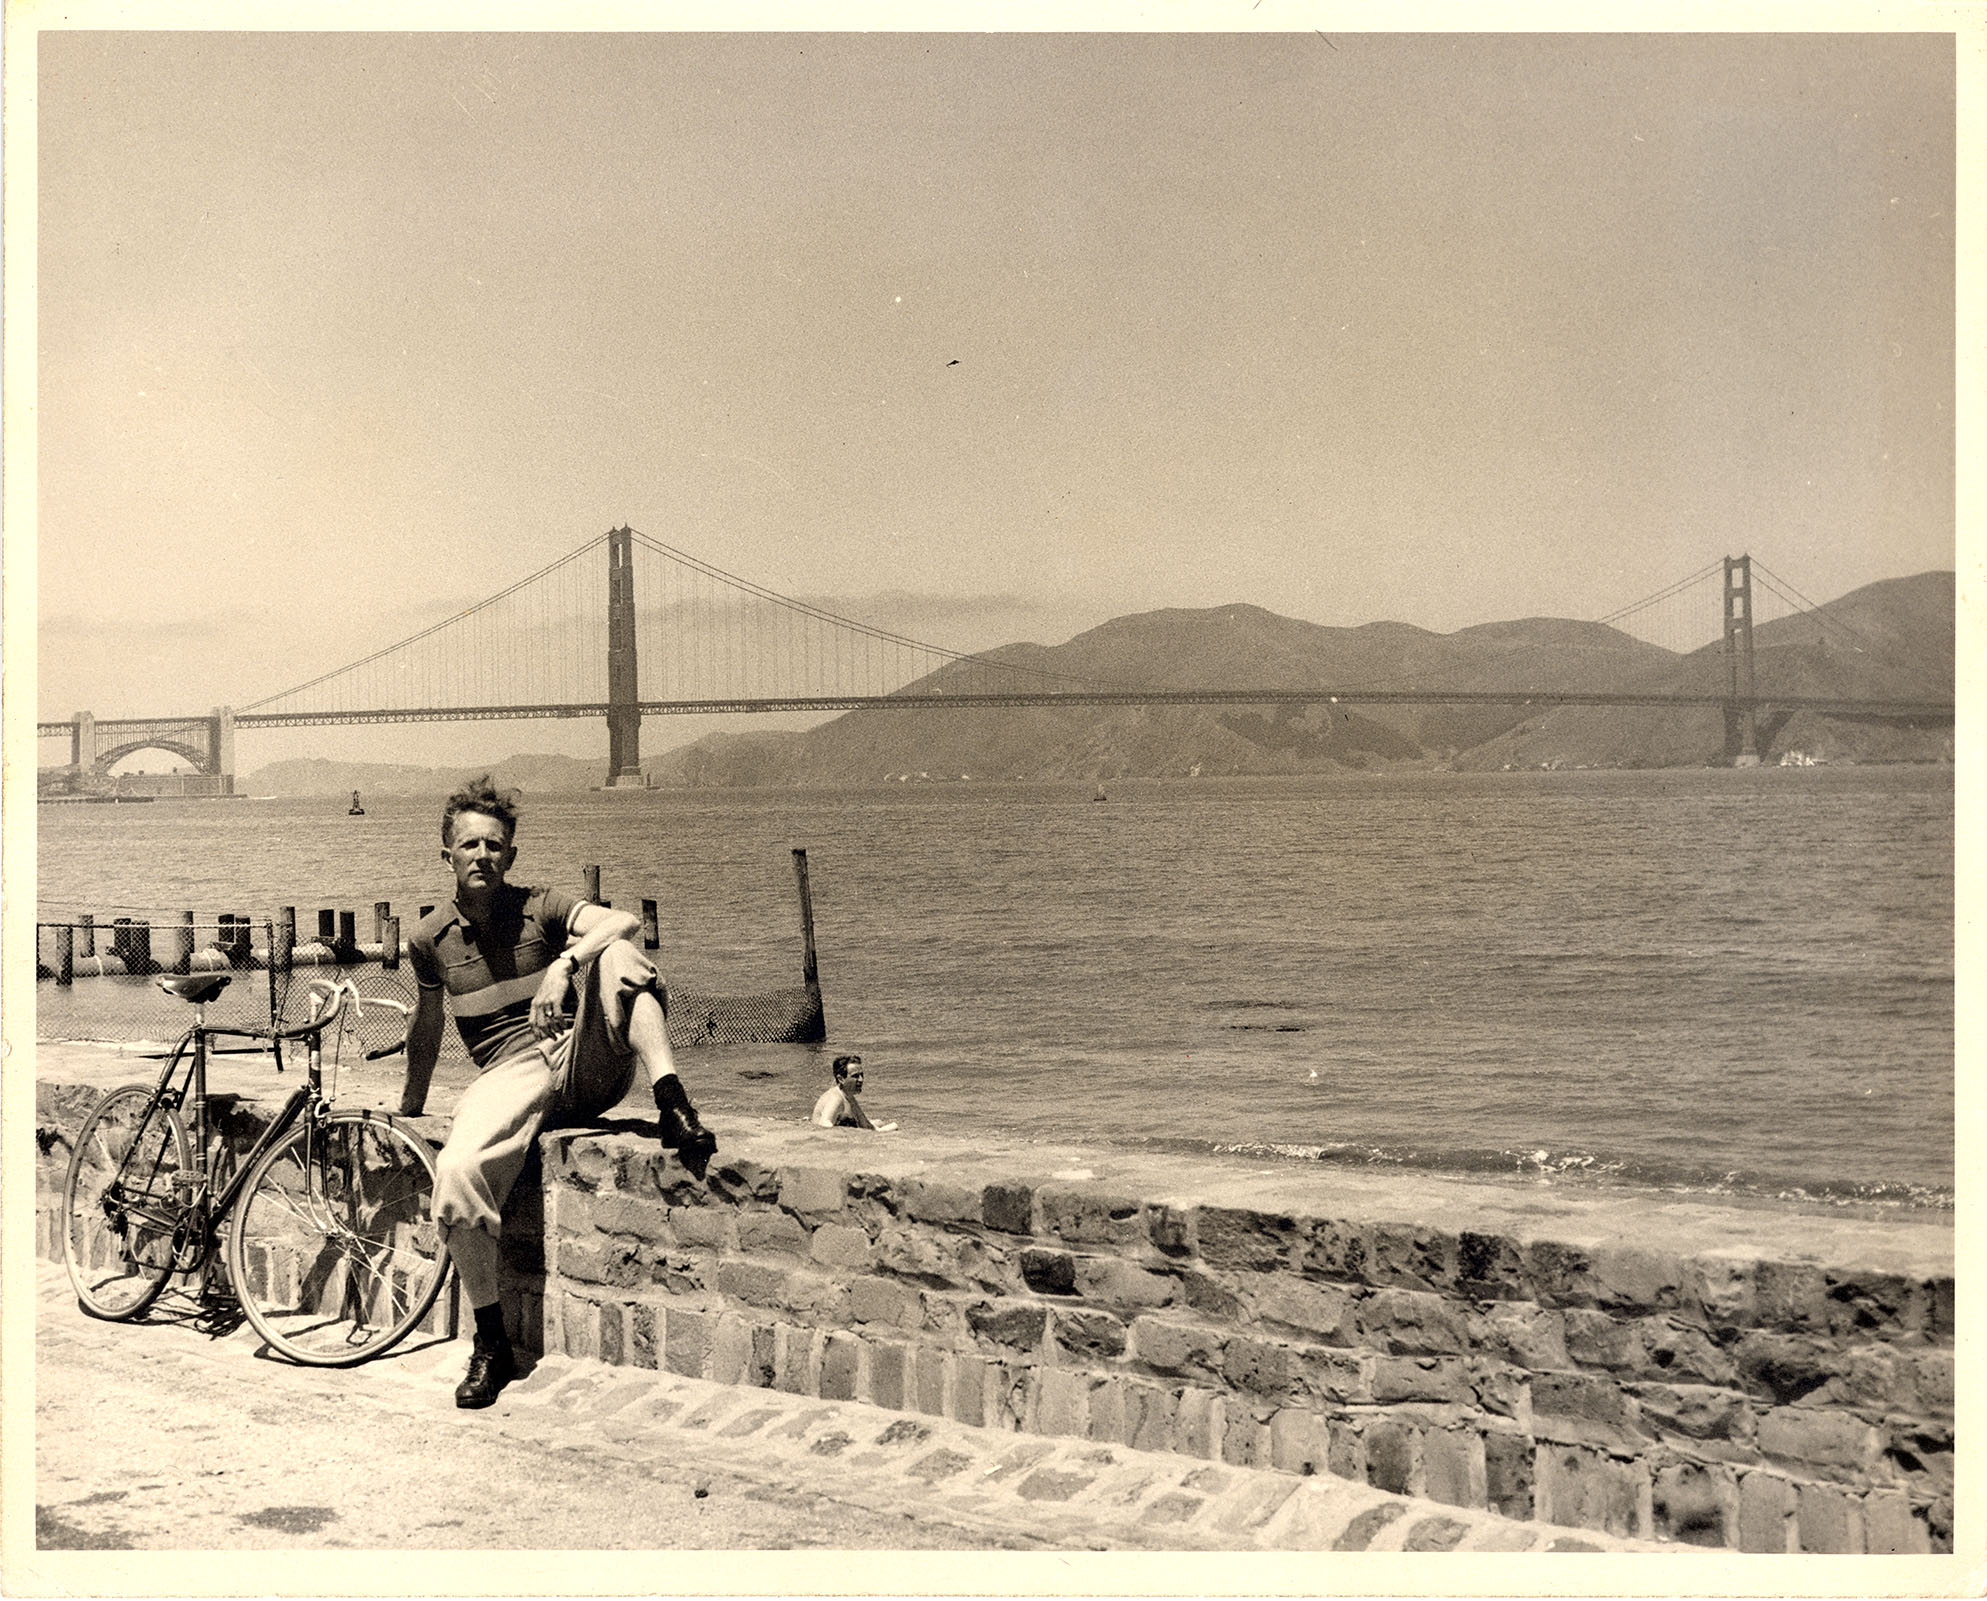 Ernie Ohrt with his road bike at San Francisco Bay - early 1960s